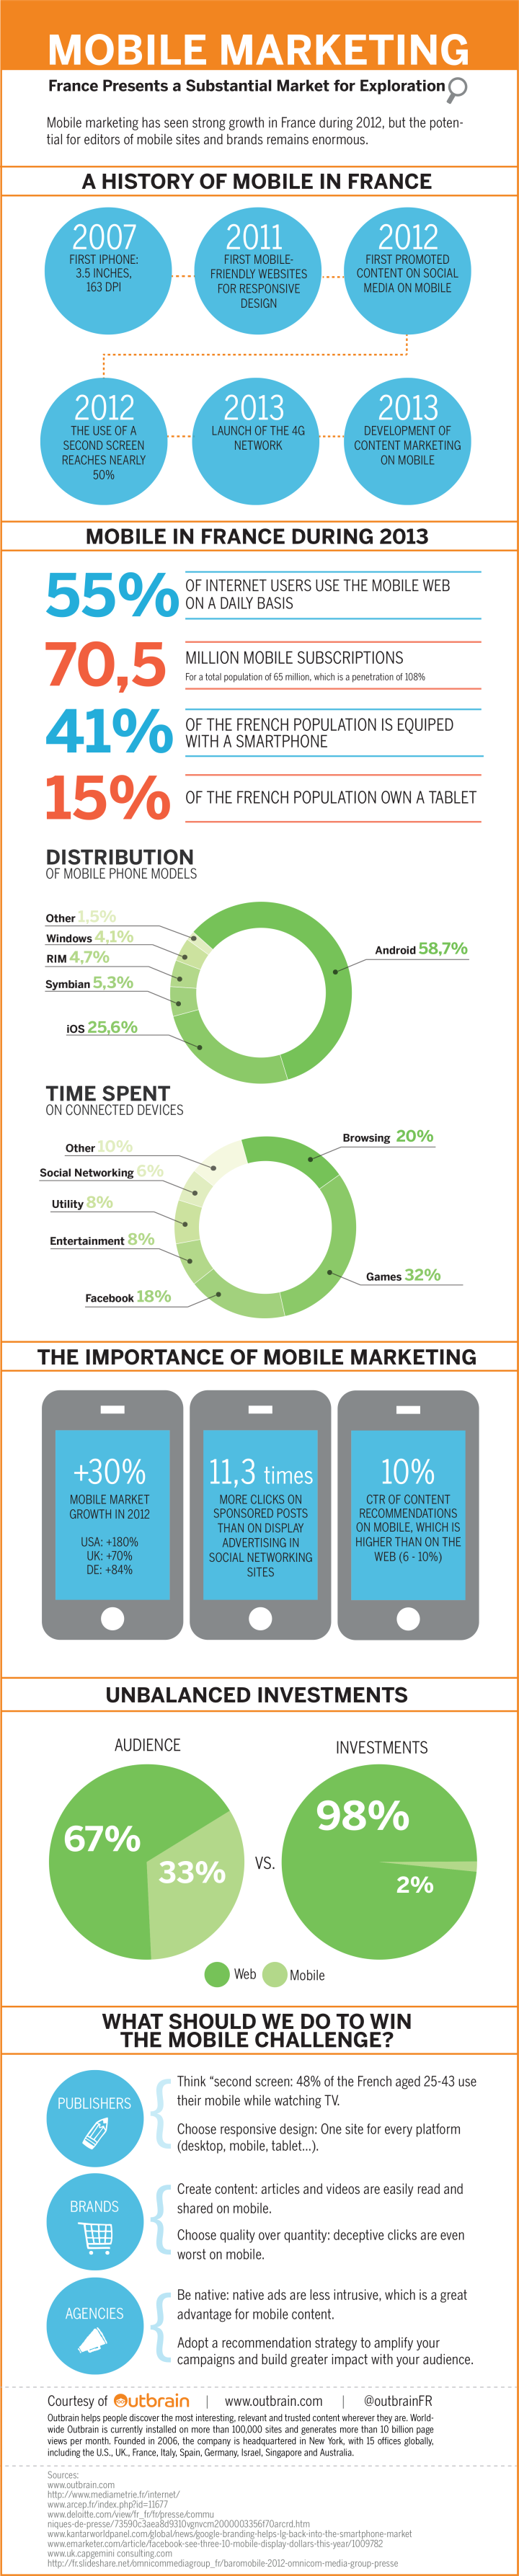 content marketing mobile